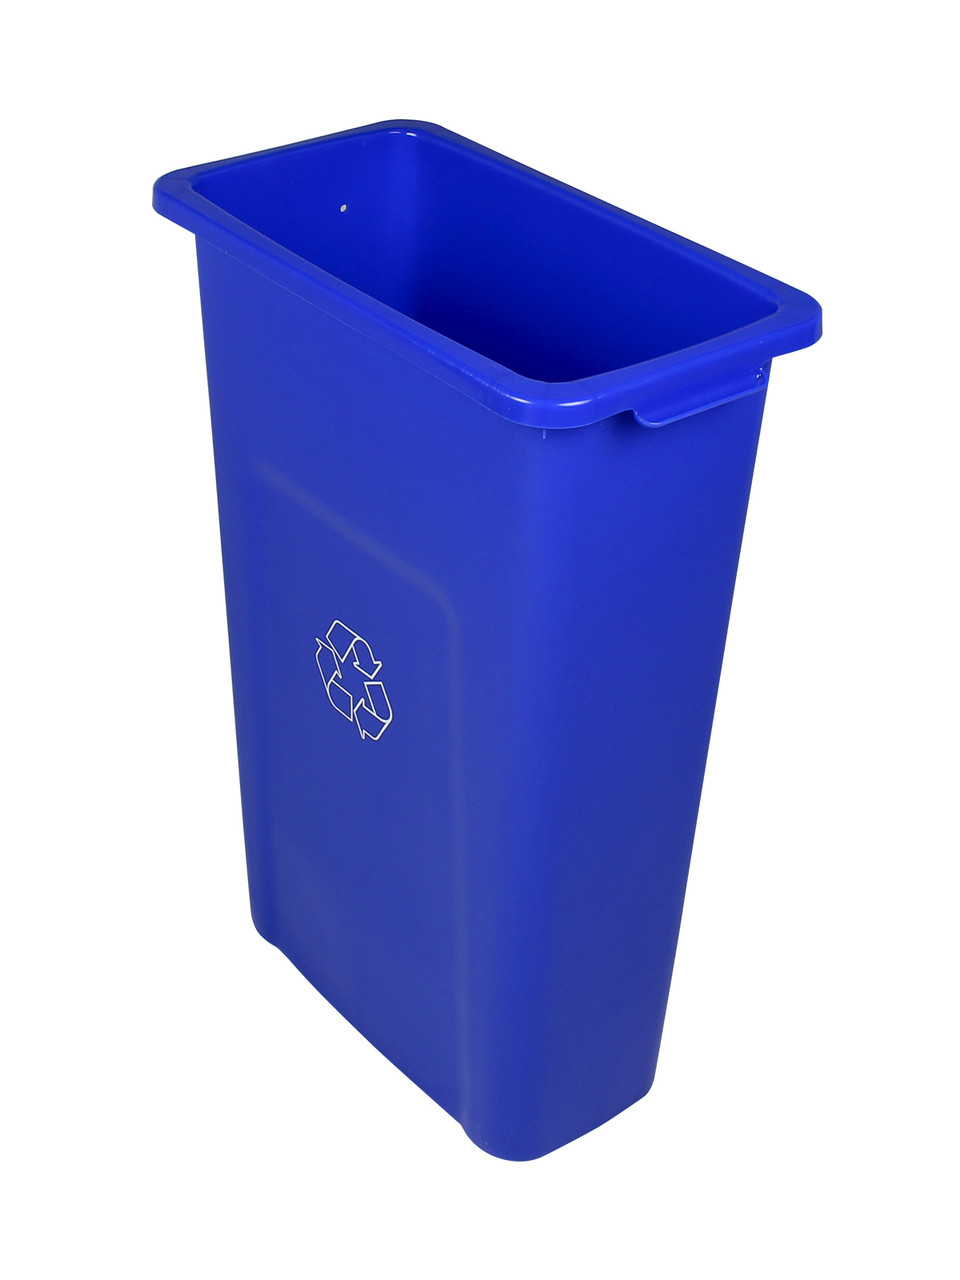 20 Gallon Skinny Plastic Home & Office Recycling Bin Blue